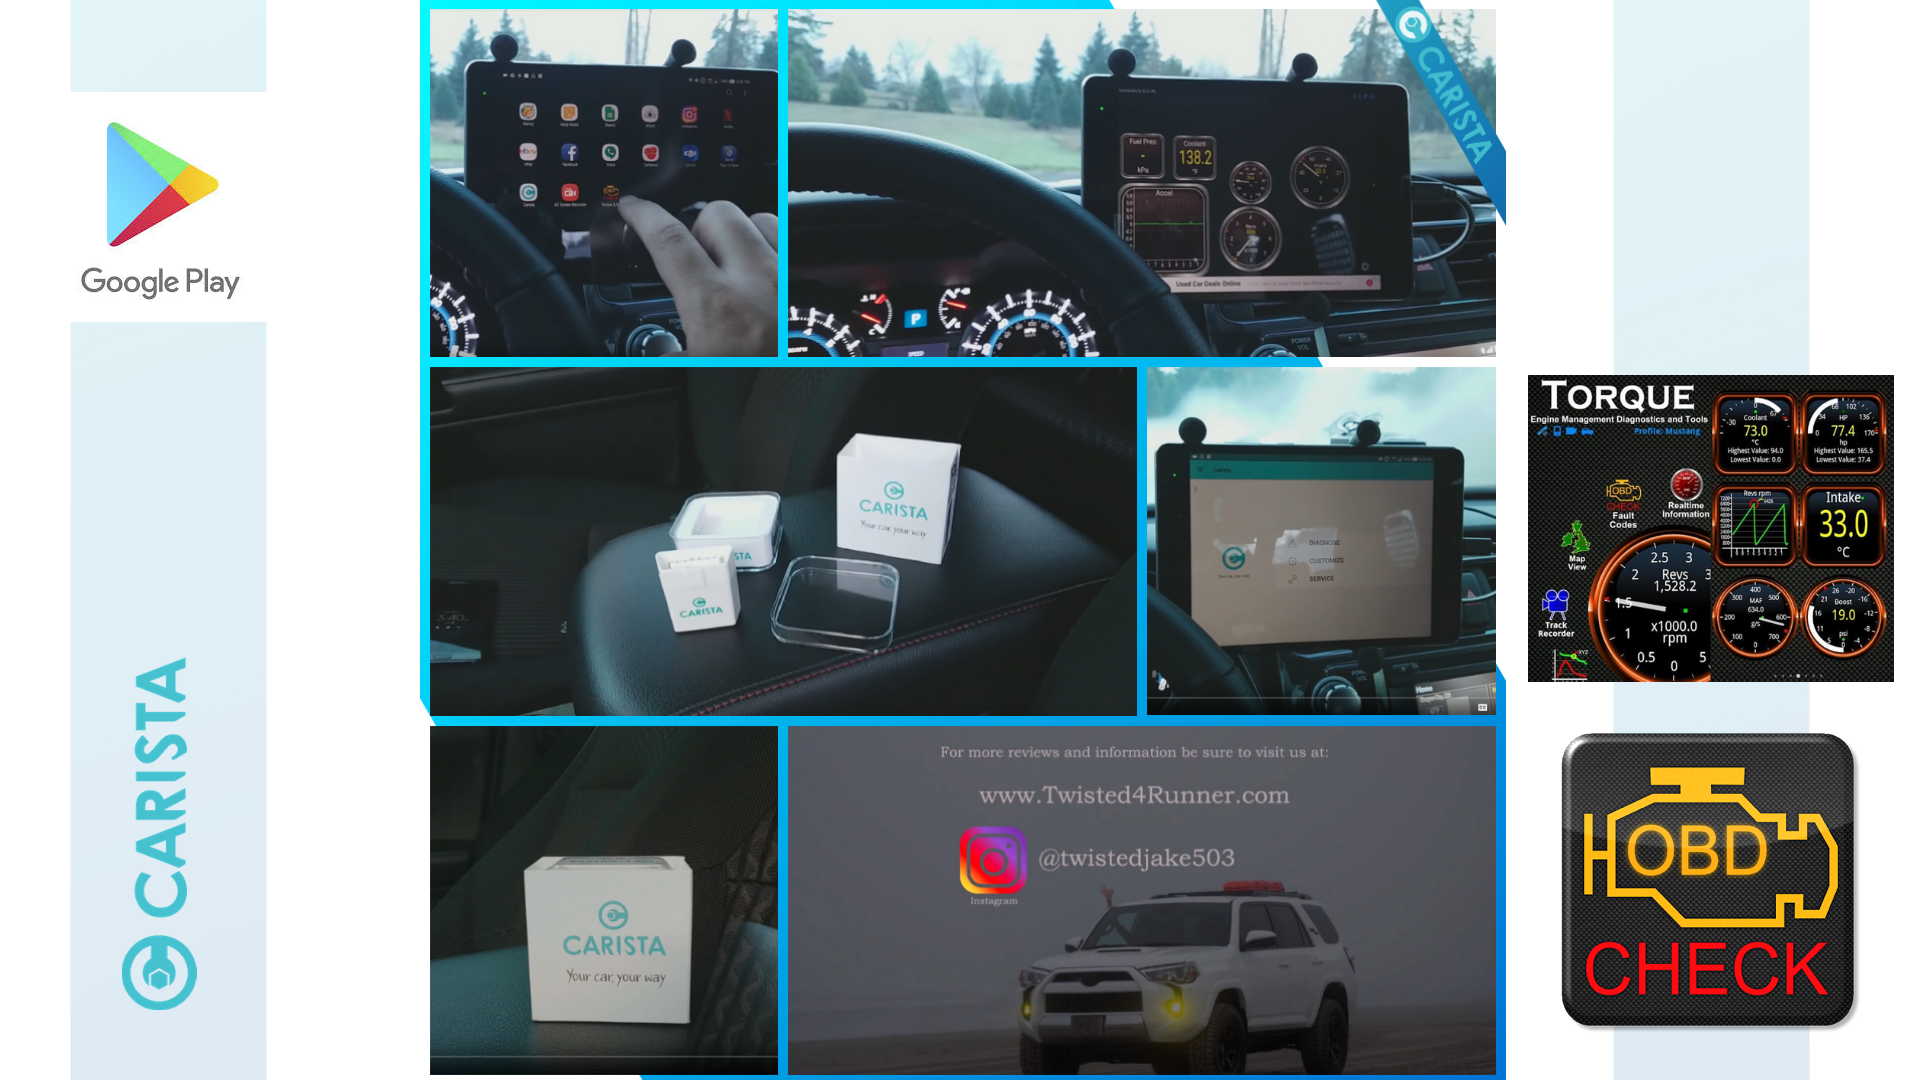 The Torque app and what it does  - Carista Blog